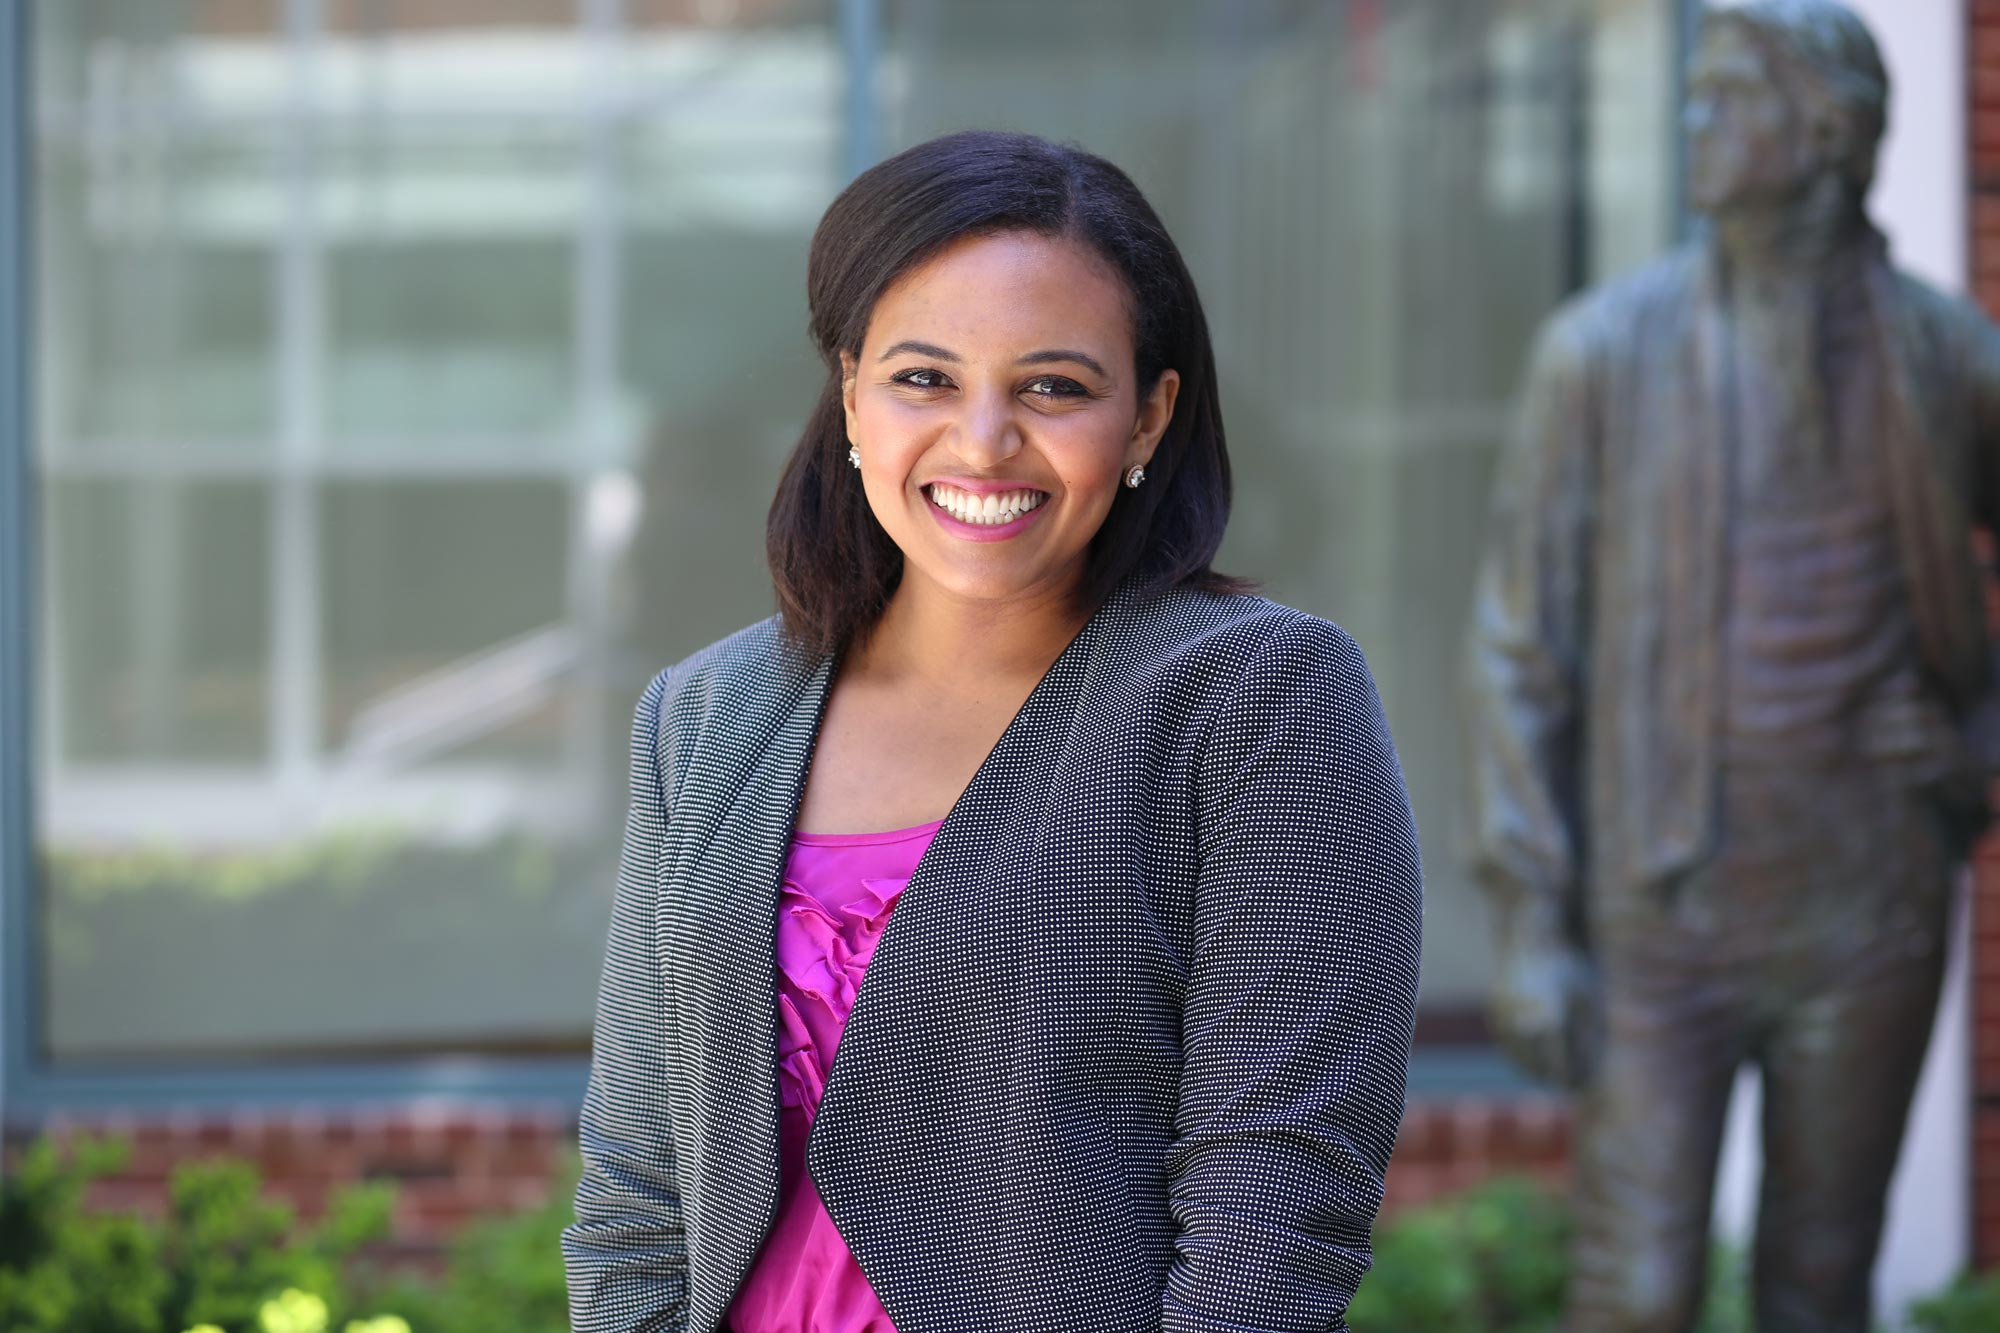 Law student and undergraduate alumna Erin Seagears received the Gregory H. Swanson Award, which recognizes students who demonstrate courage, perseverance and a commitment to justice within the community.